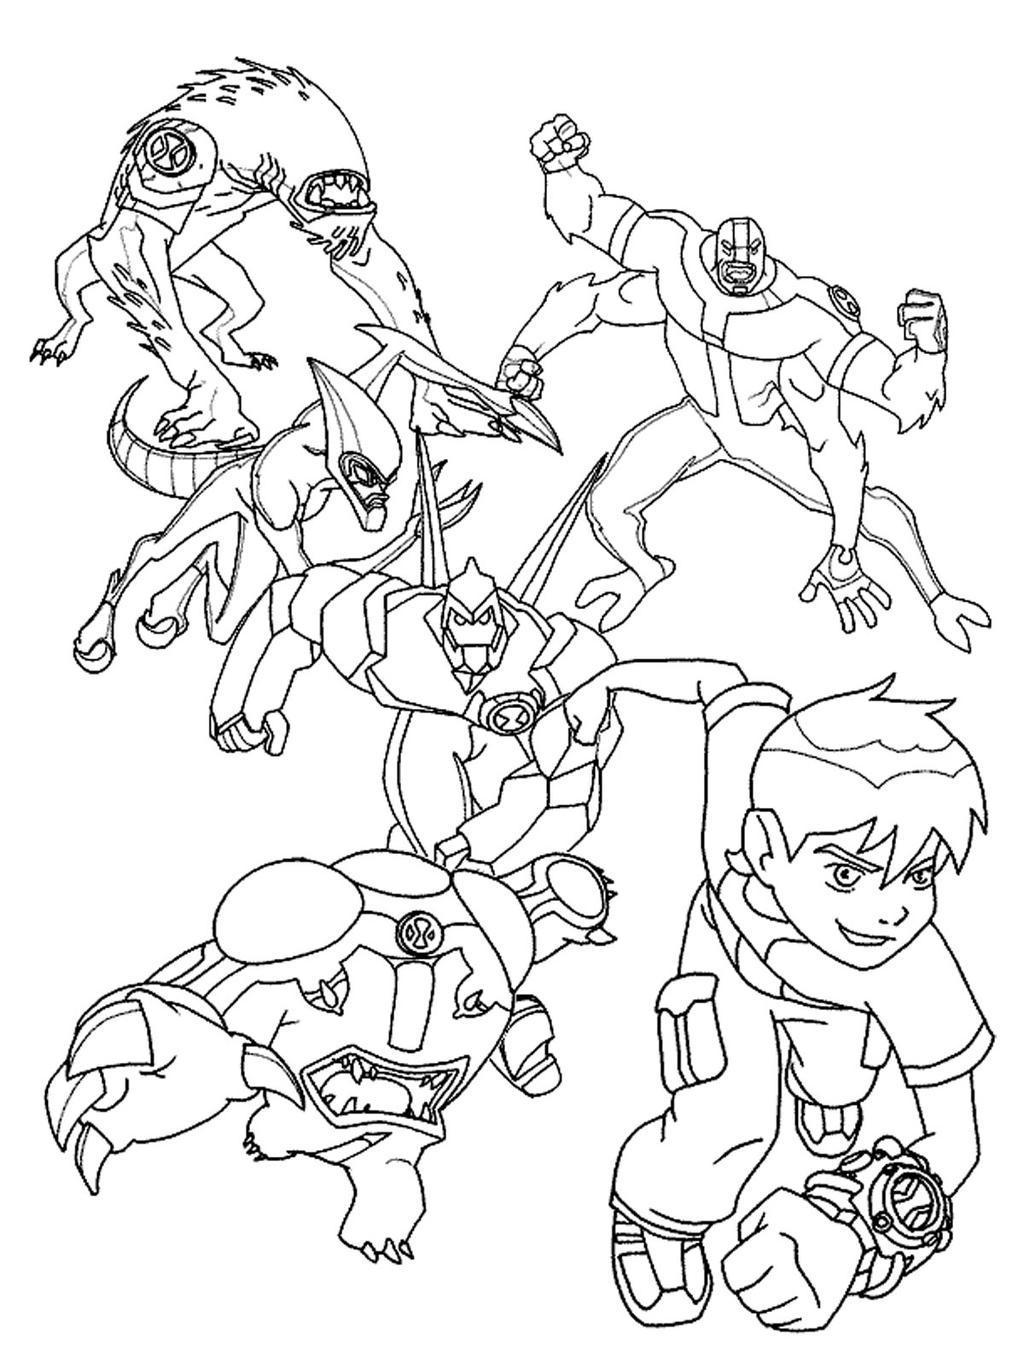 Free Ben 10 Aliens Coloring Pages printable